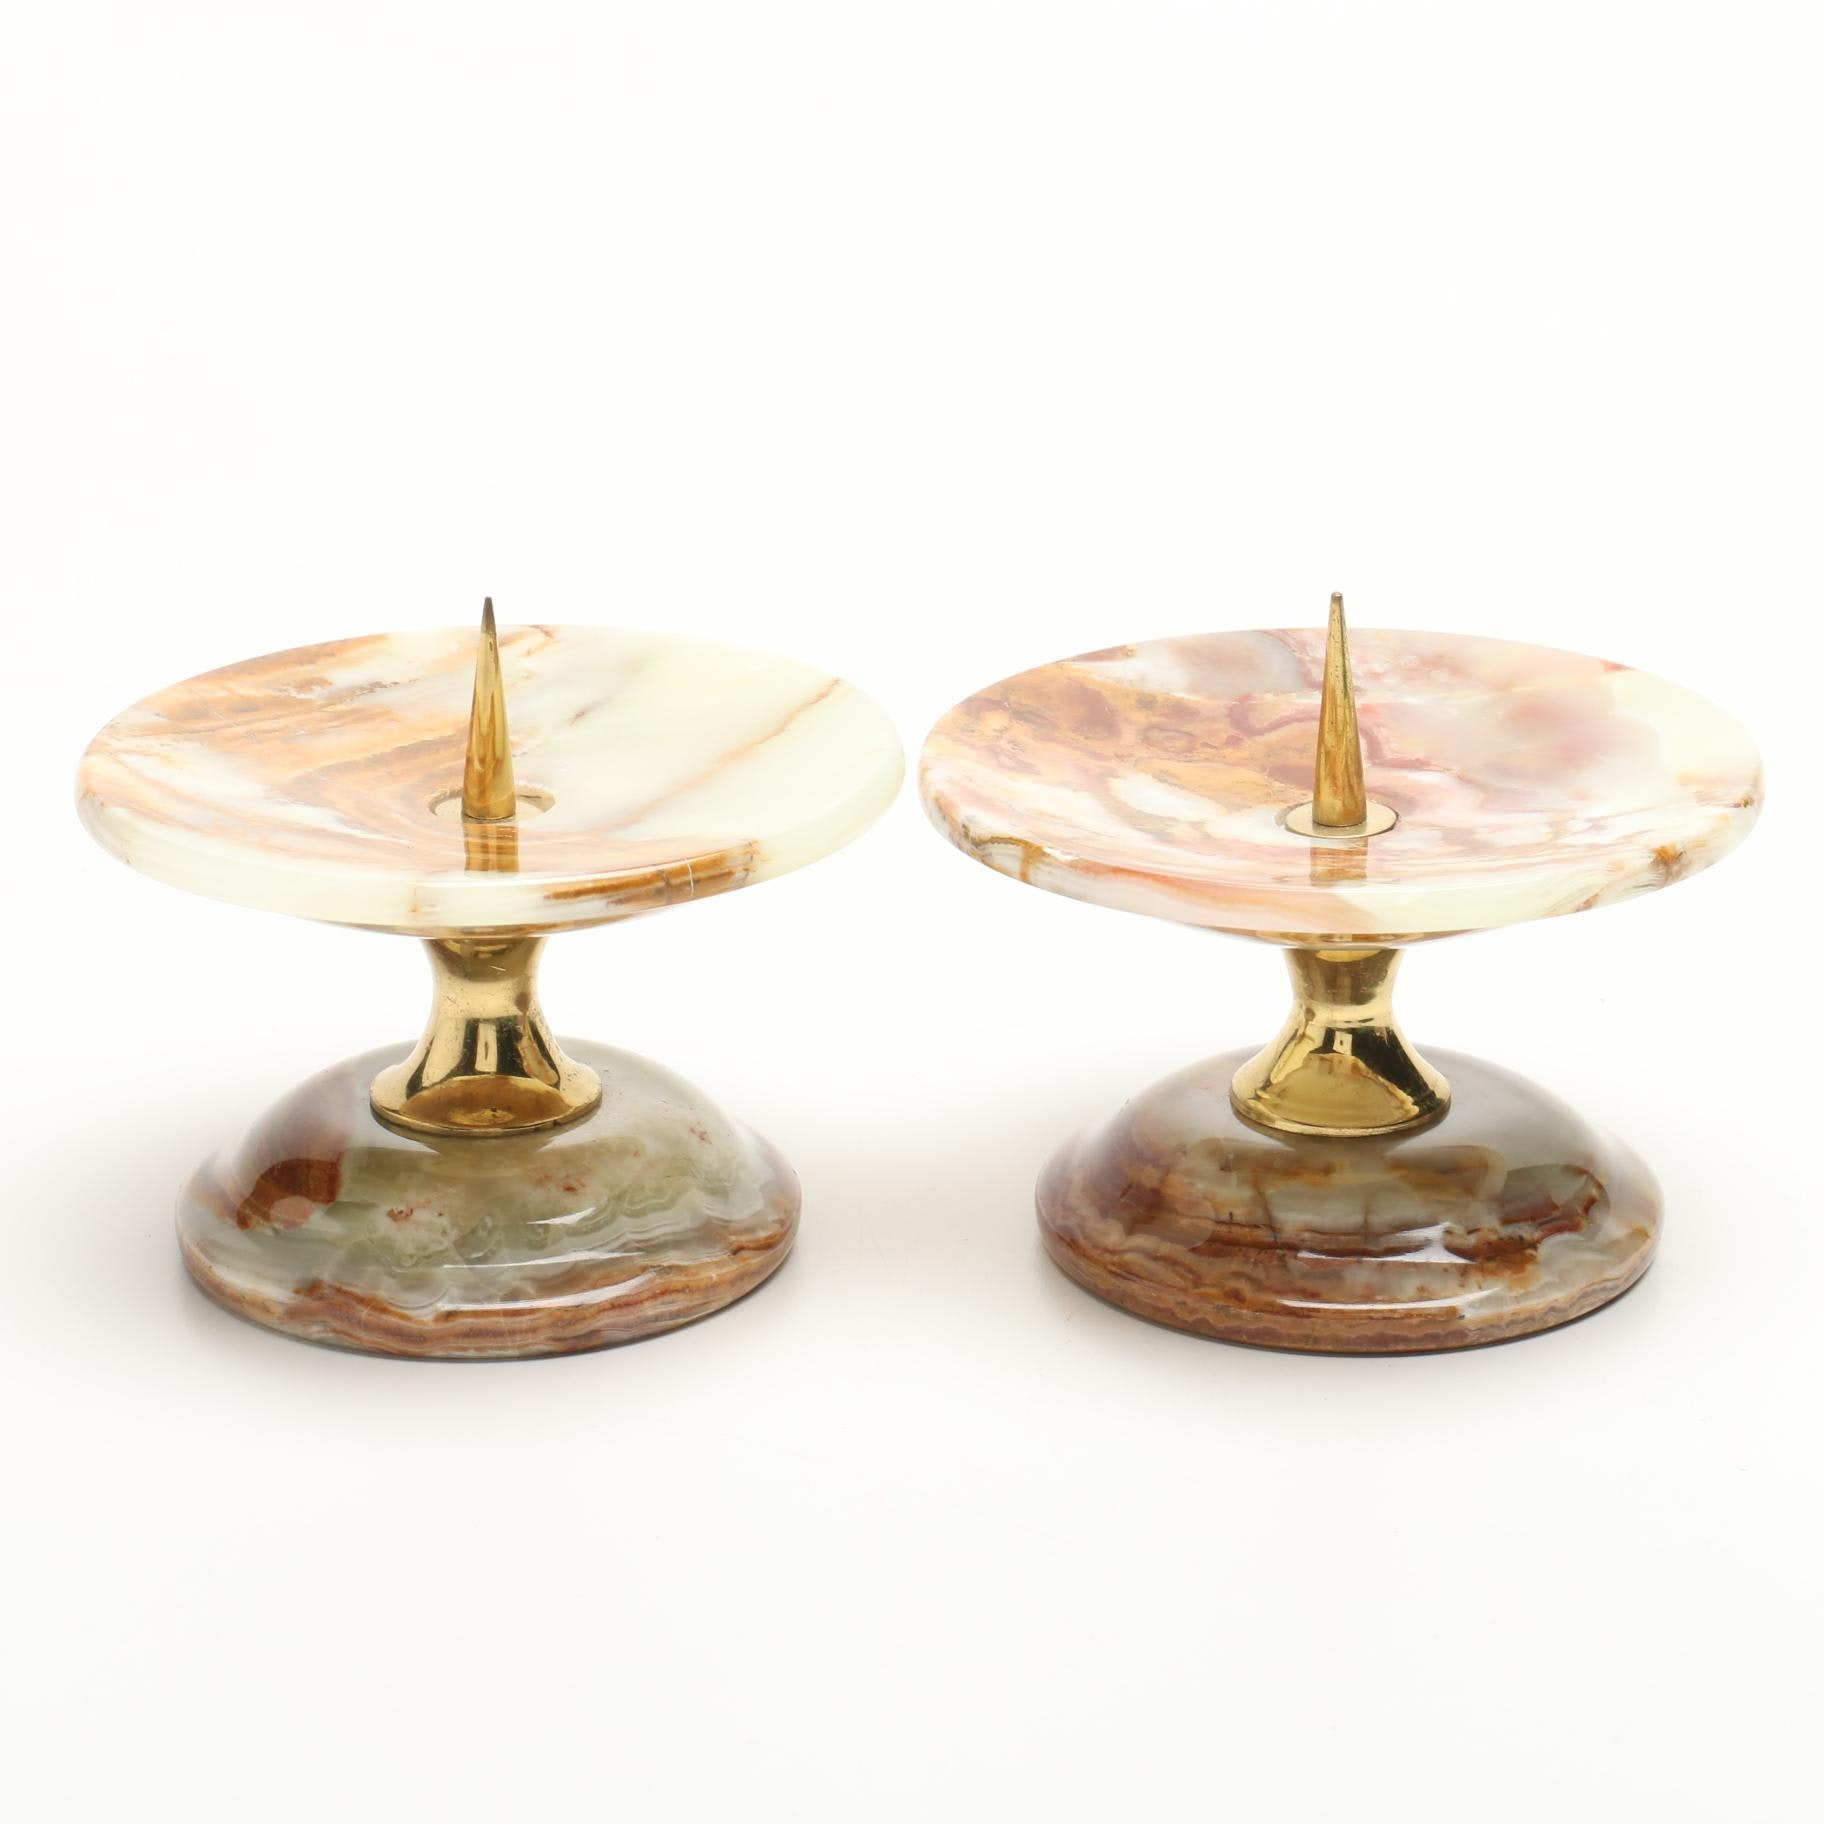 Banded Calcite Candle Holders